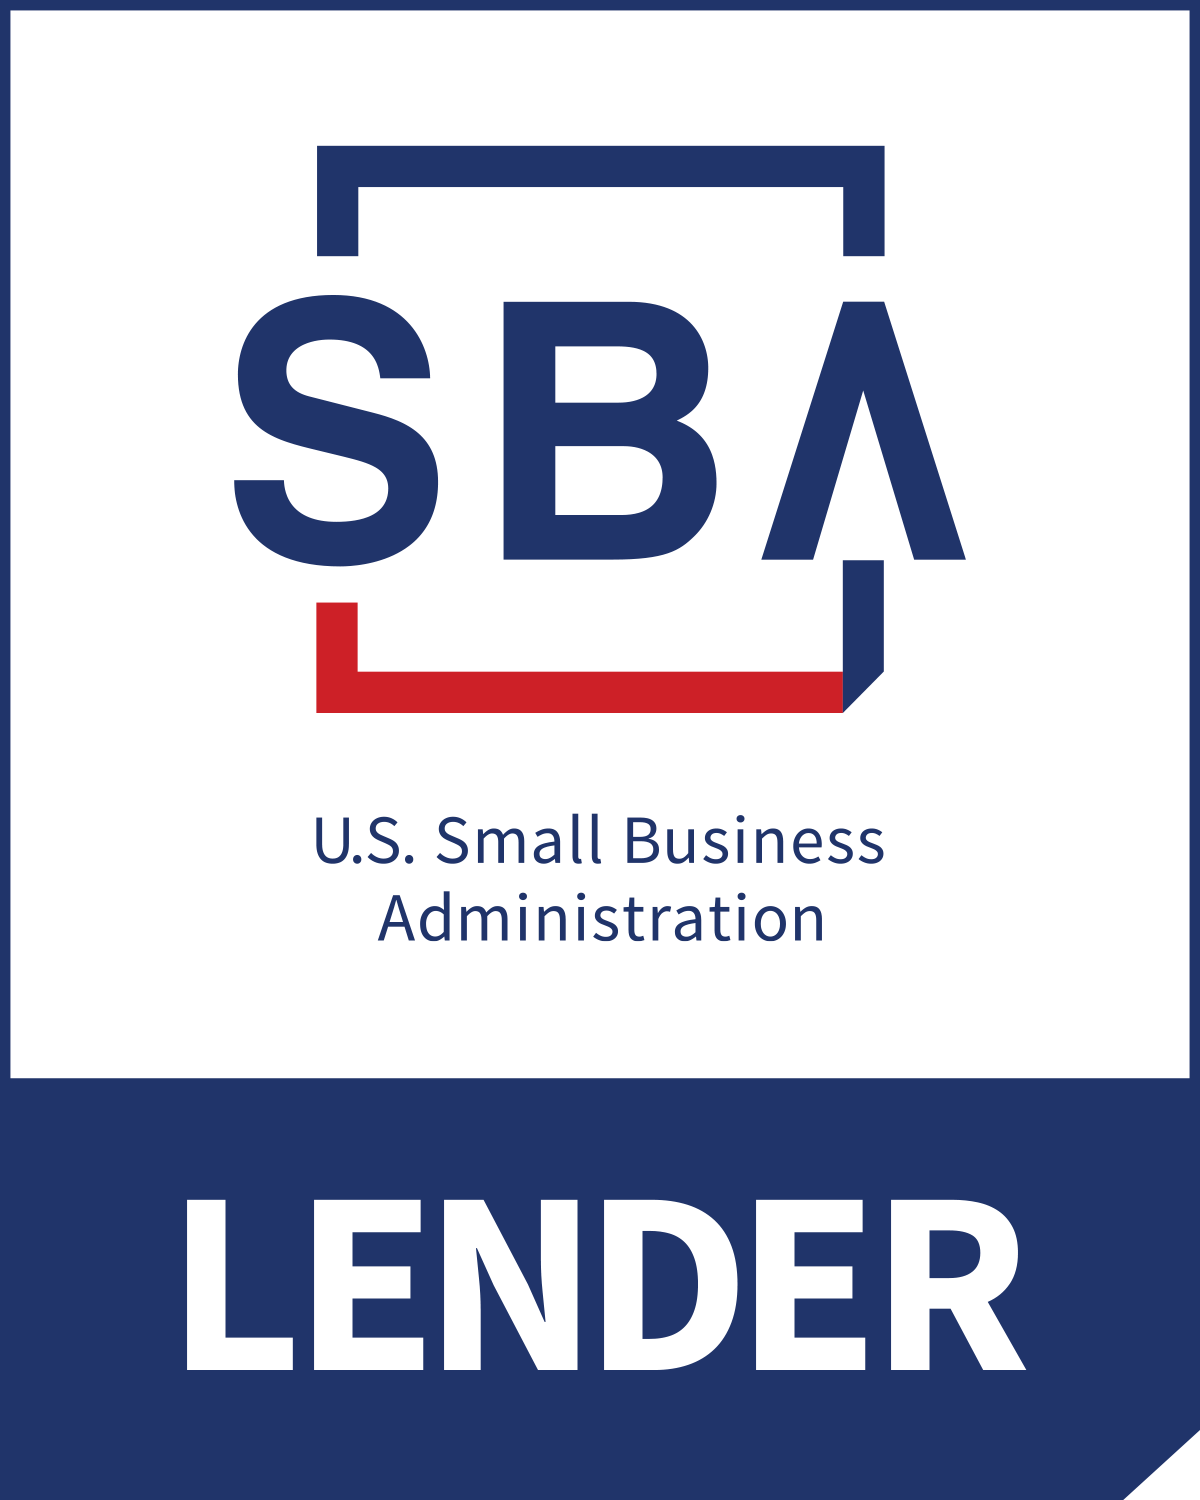 Approved to offer SBA loan products under SBA's Lender/Microloan Programs.